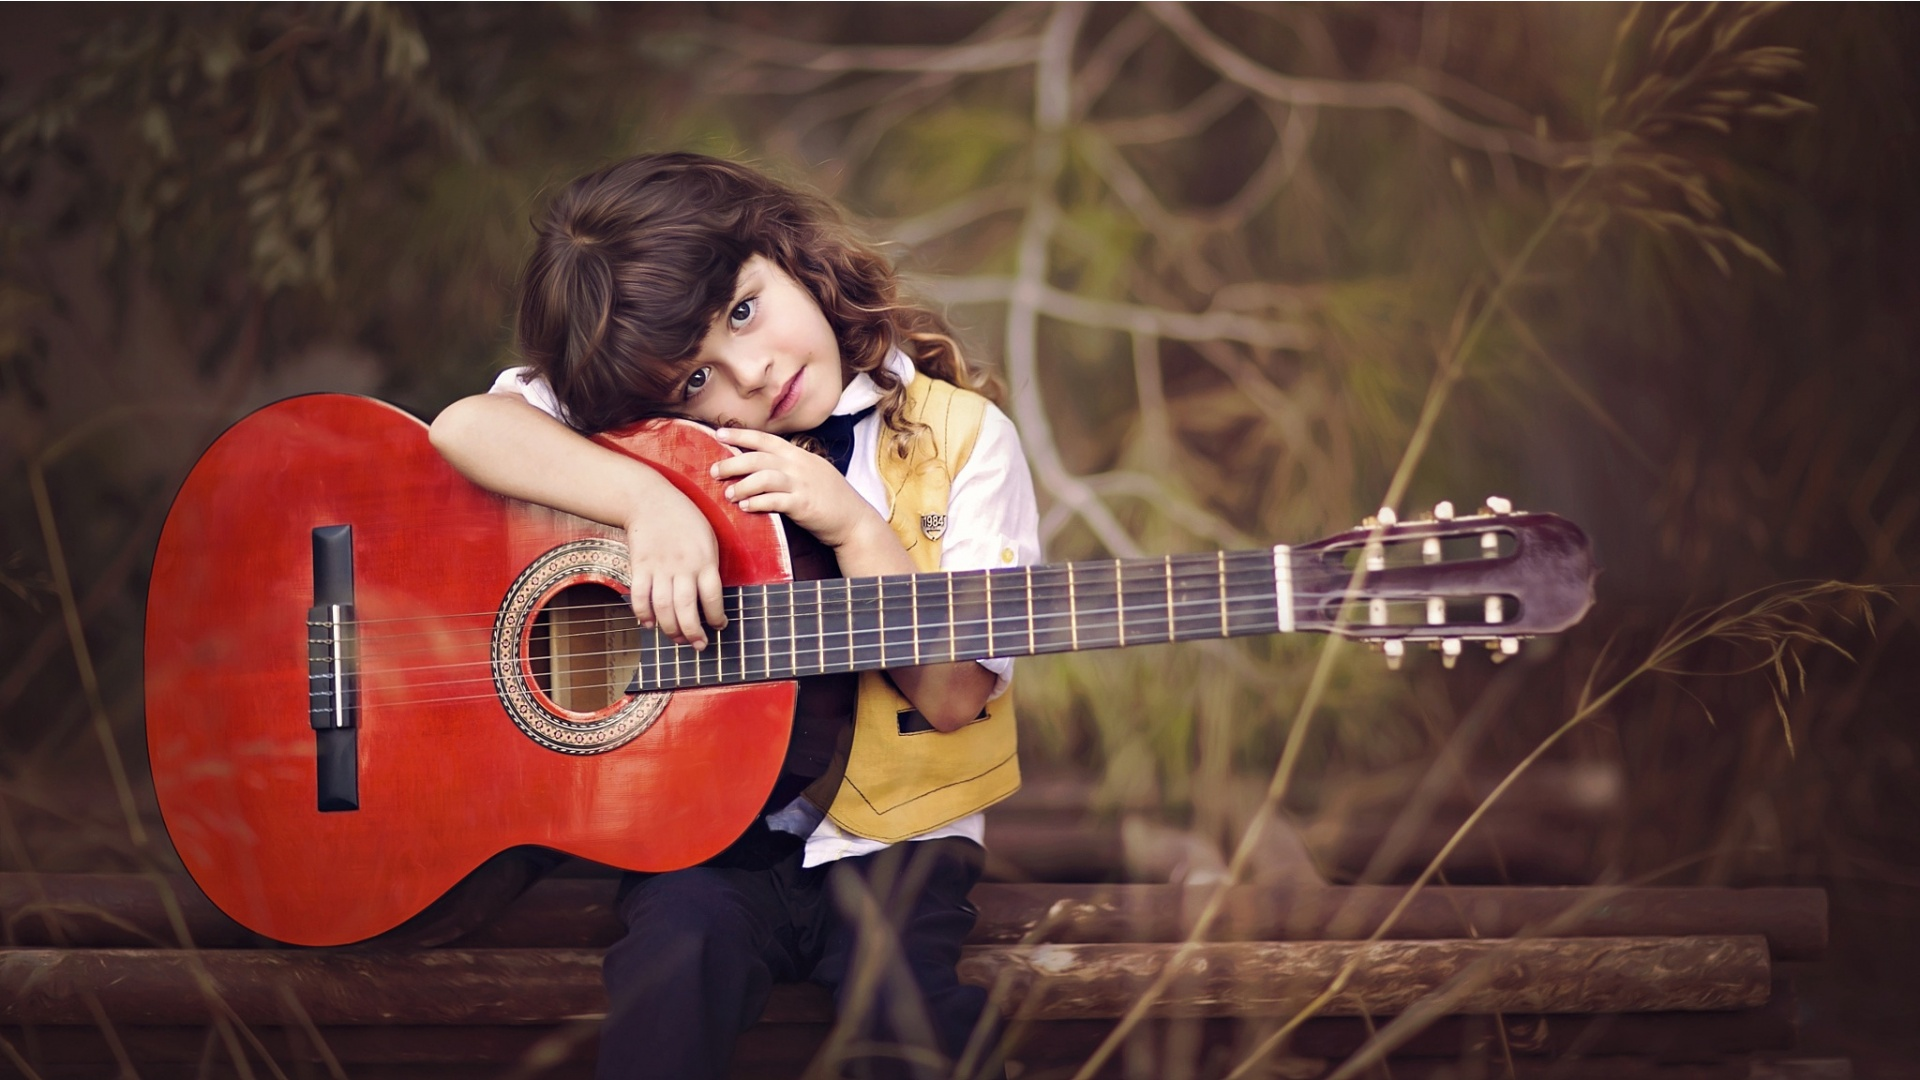 cute boy hold on red guitar wallpapers 1920x1080 444839